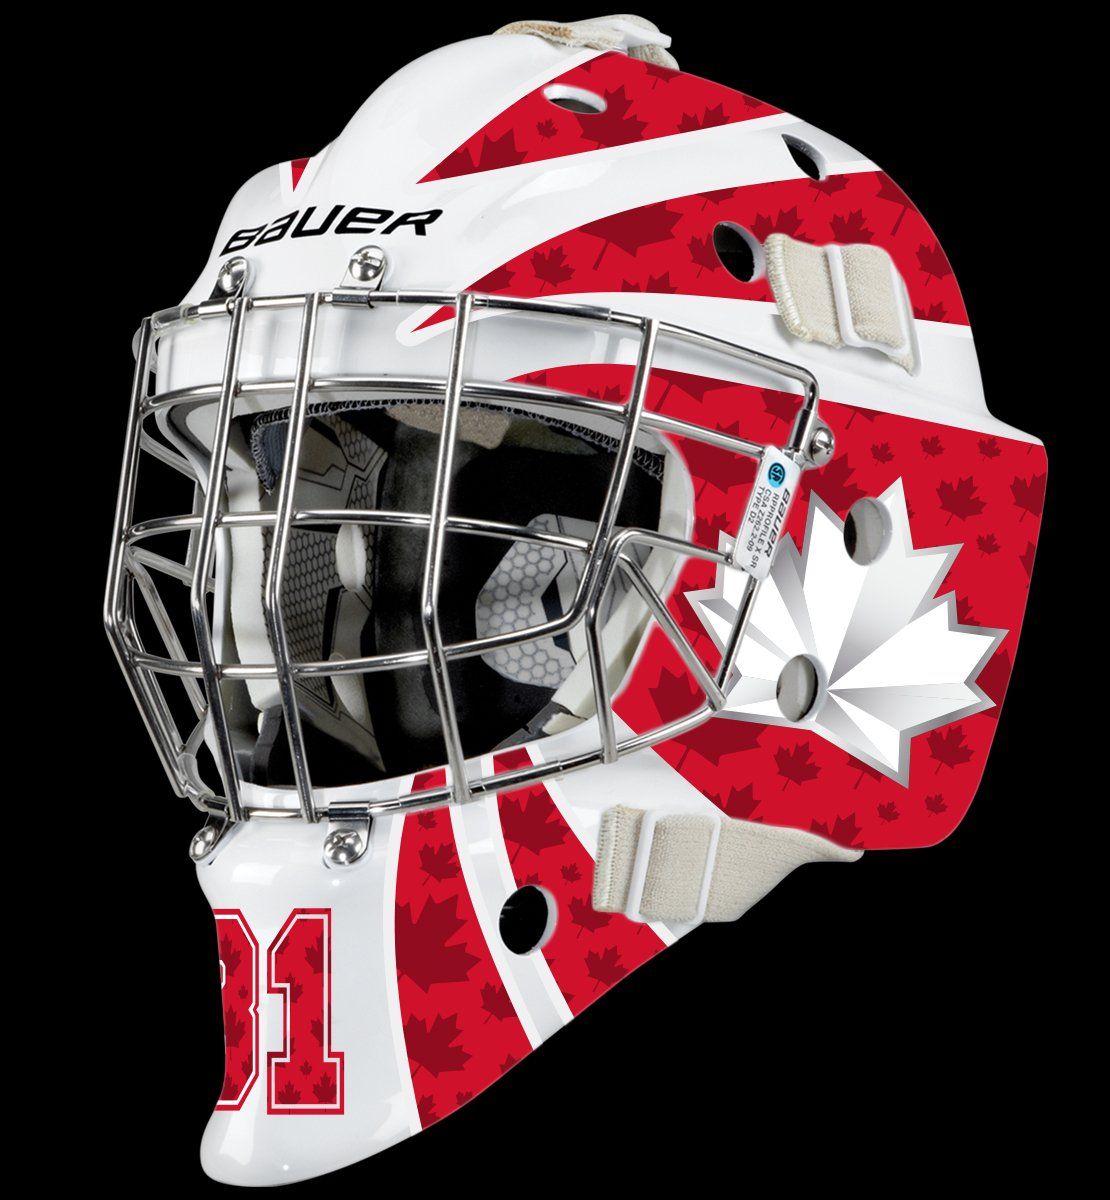 Cageskinz canada mask kit